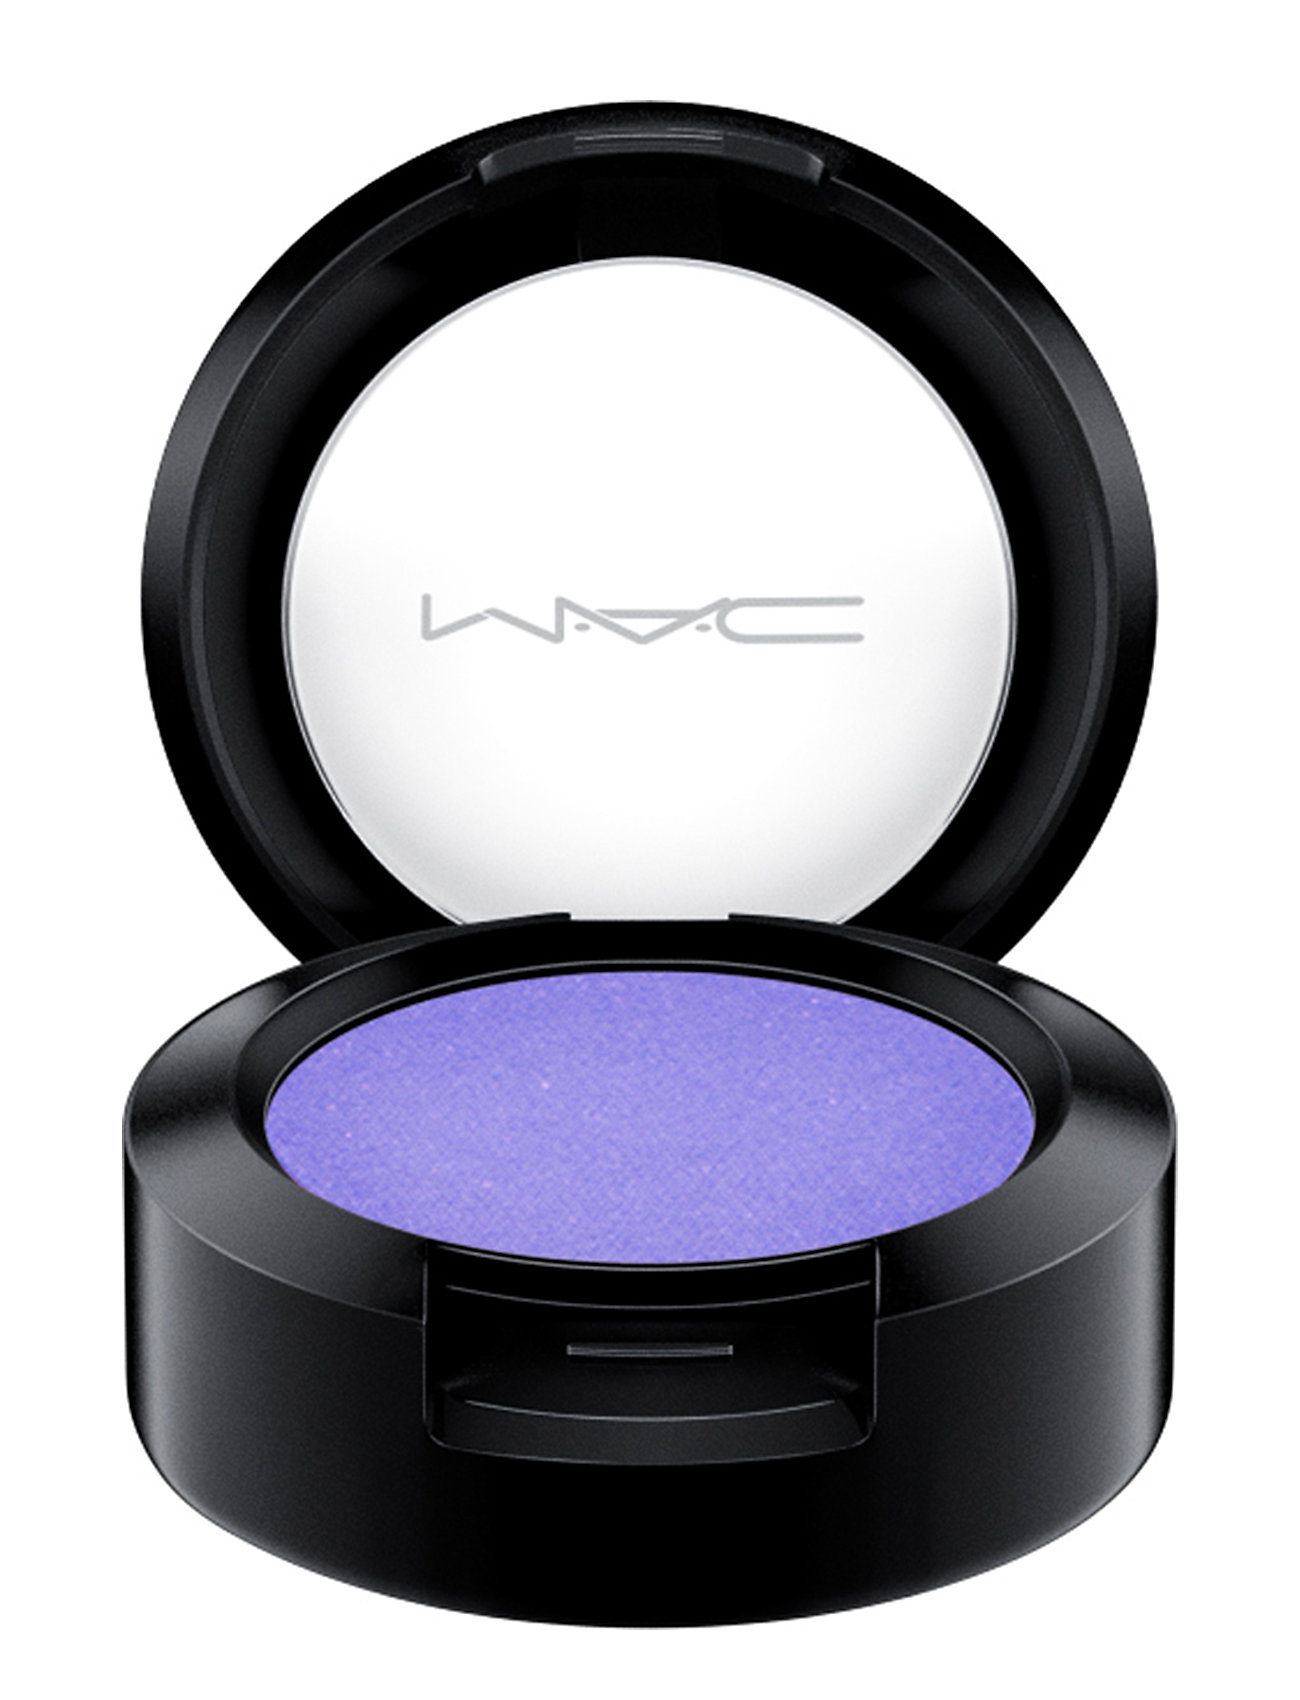 Image of Small Eye Shadow Beauty WOMEN Makeup Eyes Eyeshadow - Not Palettes Blå M.A.C. (3260672951)